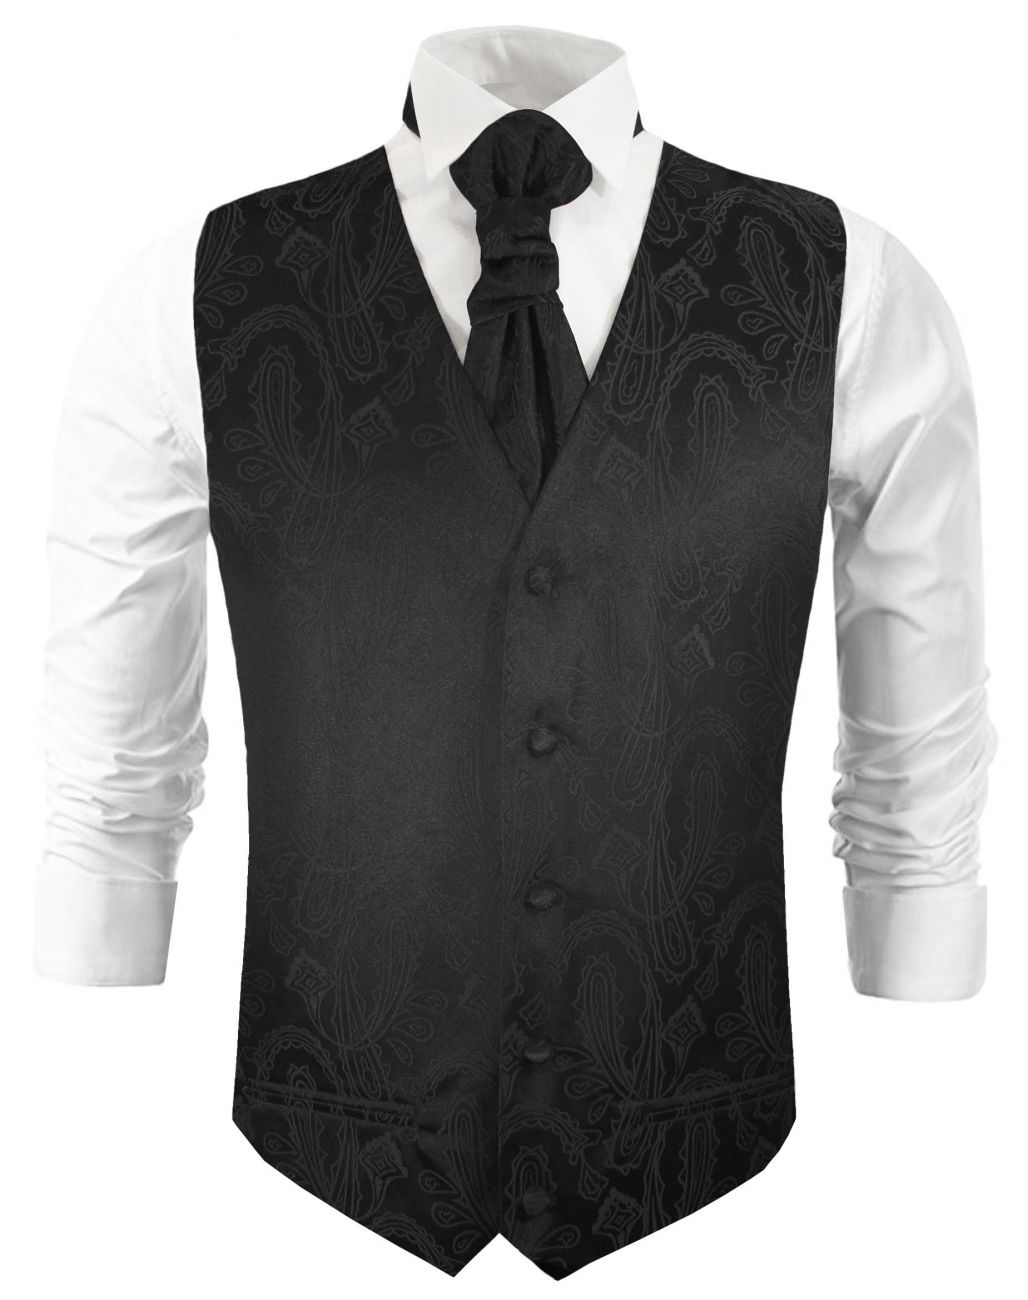 Black wedding vest paisley waistcoat with cravat